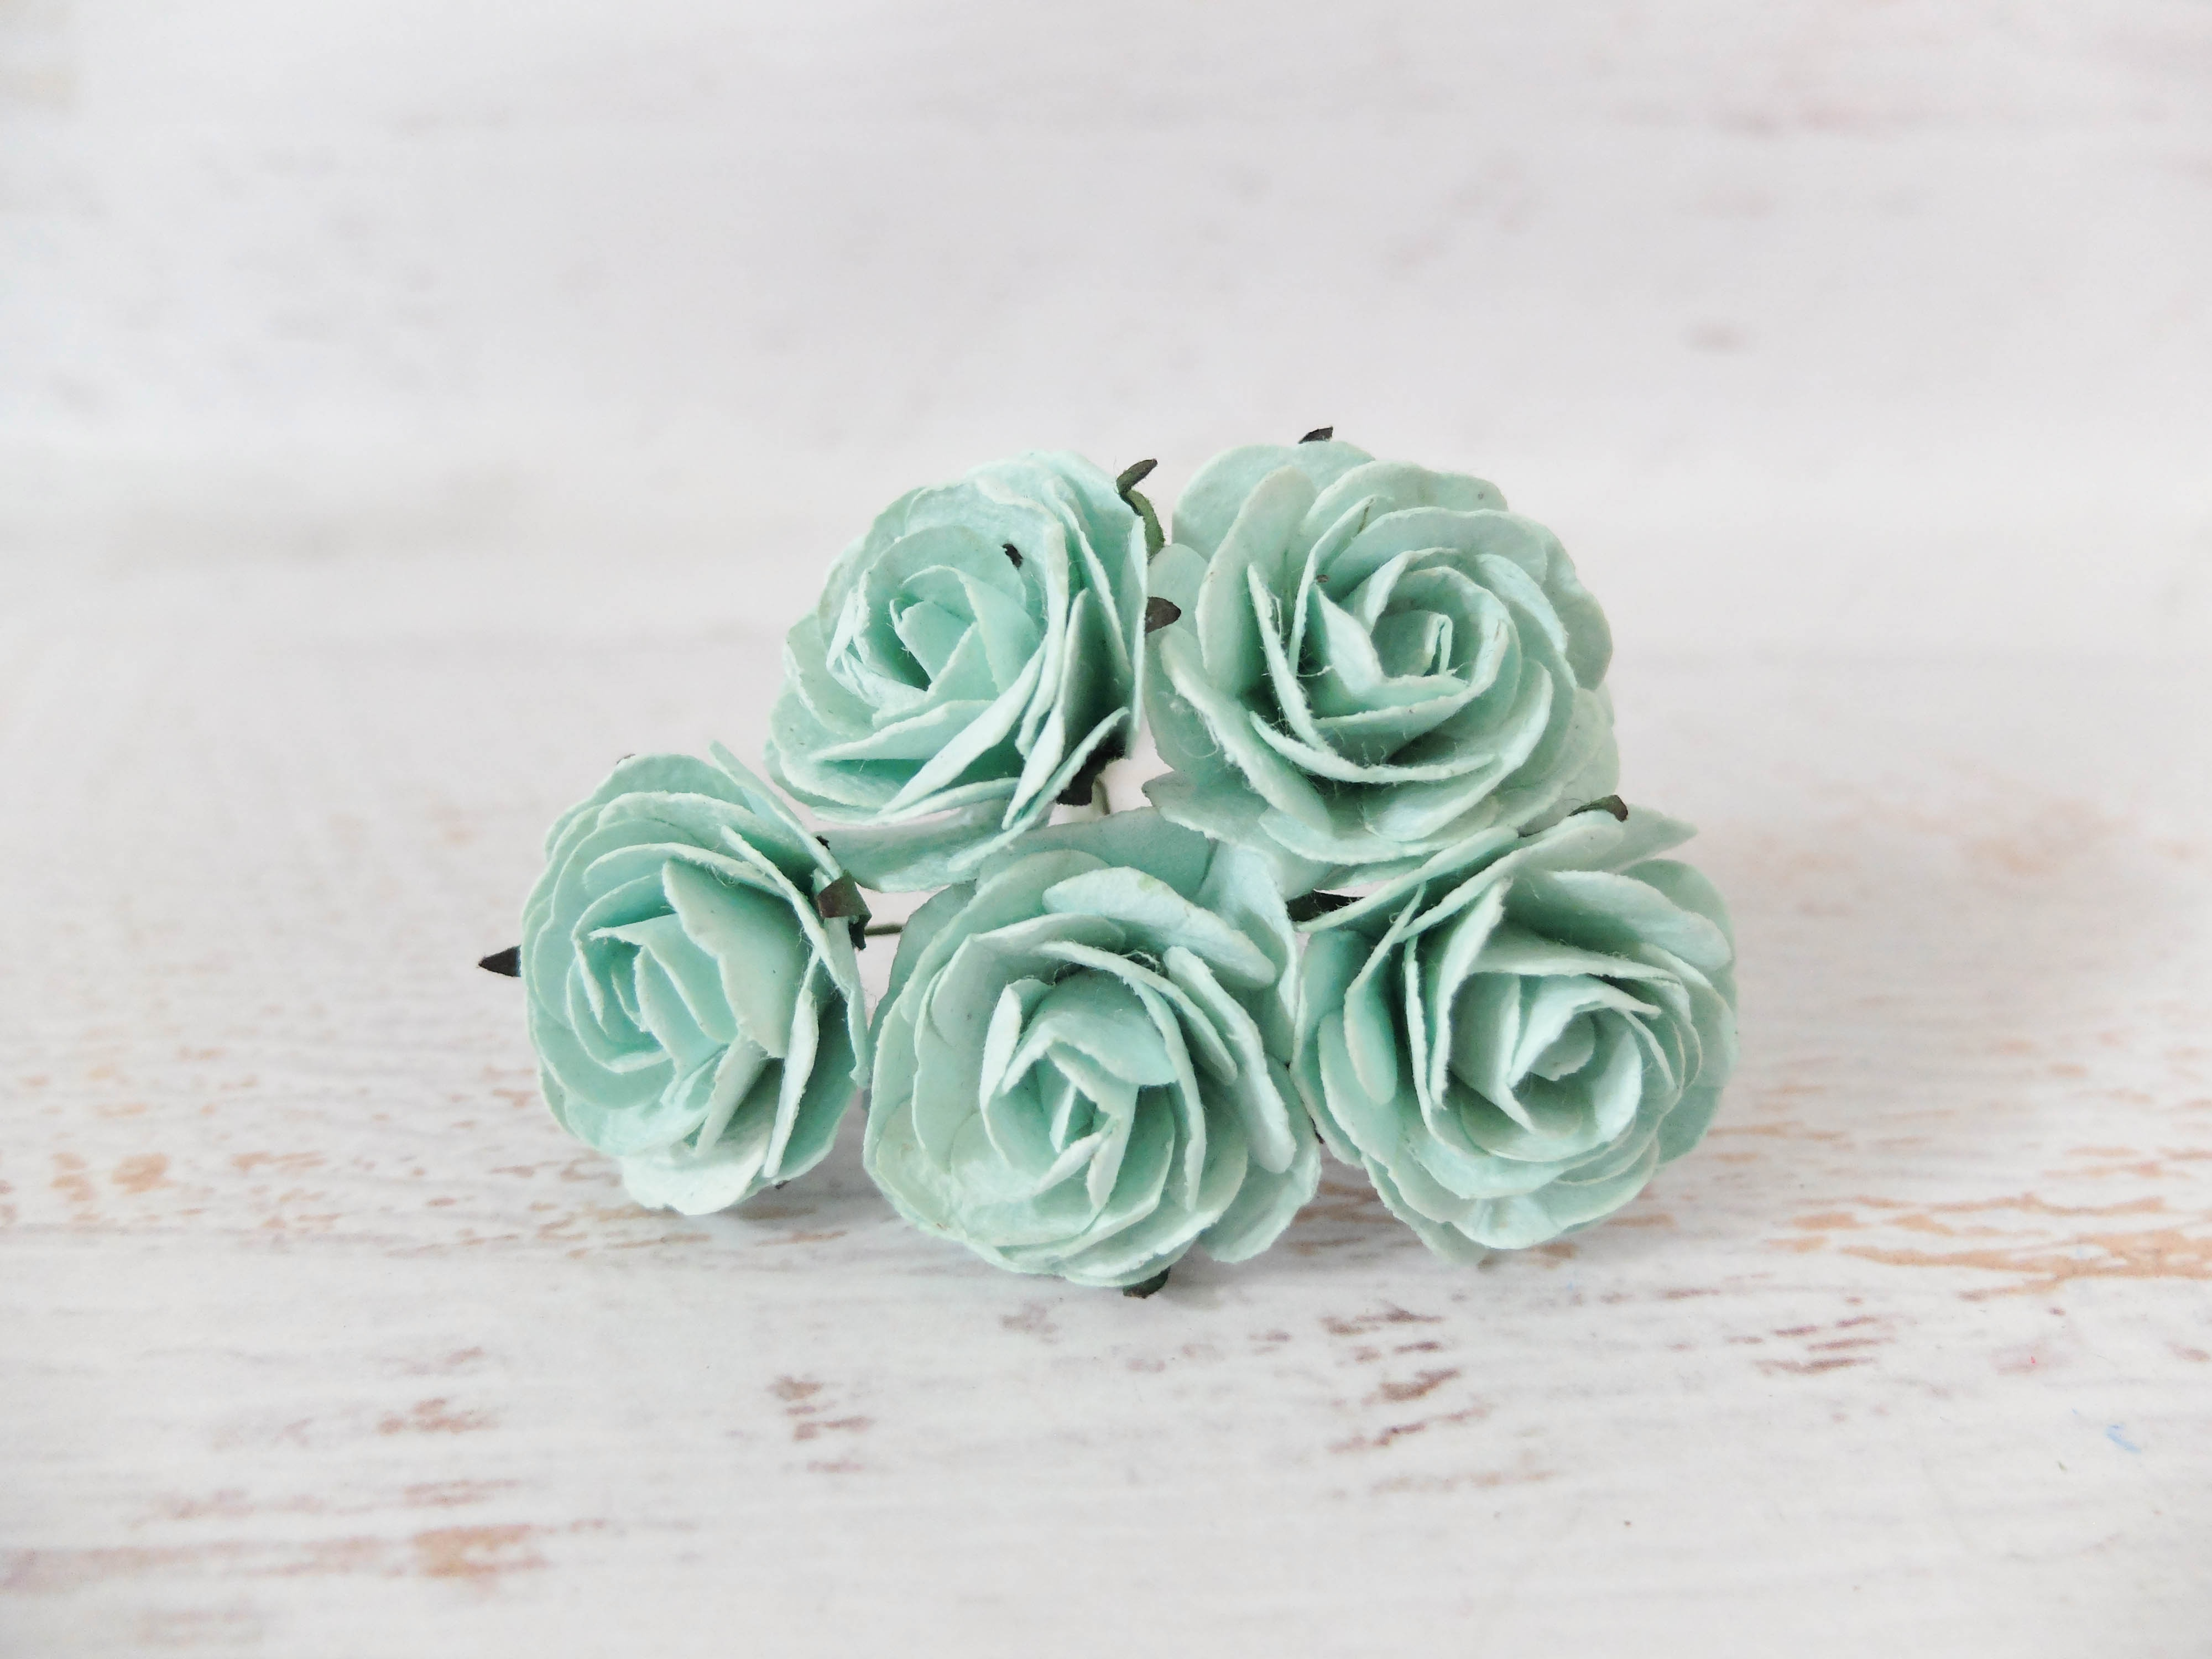 35 Cm Mulberry Roses Wholesale Mulberry Paper Flowers